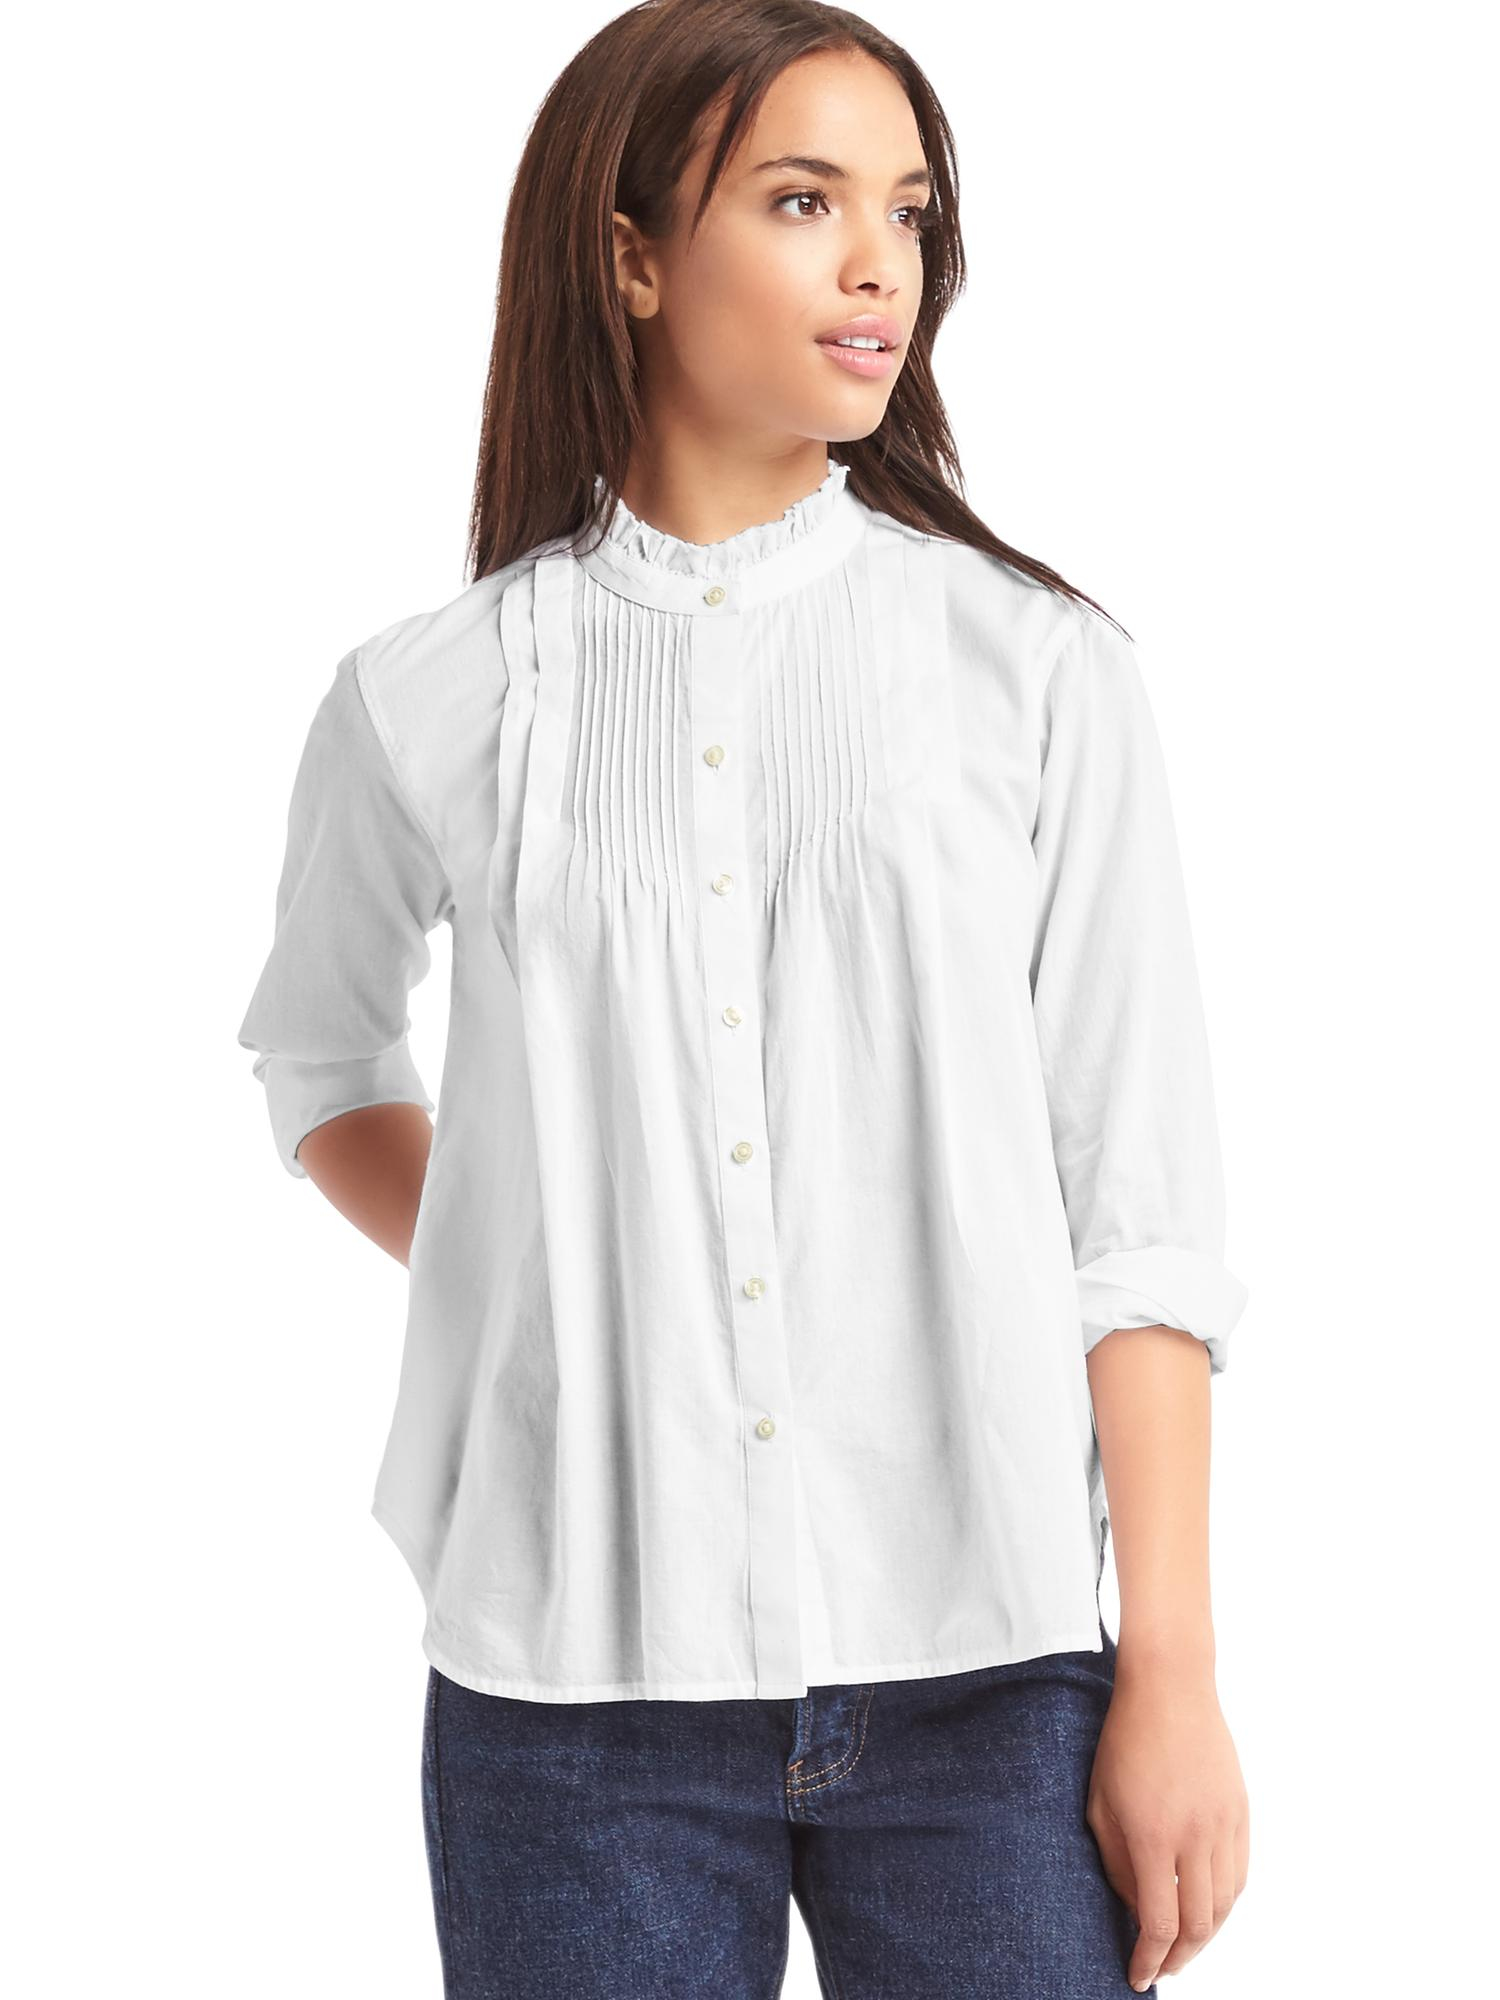 Buy the latest black ruffle shirt cheap shop fashion style with free shipping, and check out our daily updated new arrival black ruffle shirt at bonjournal.tk